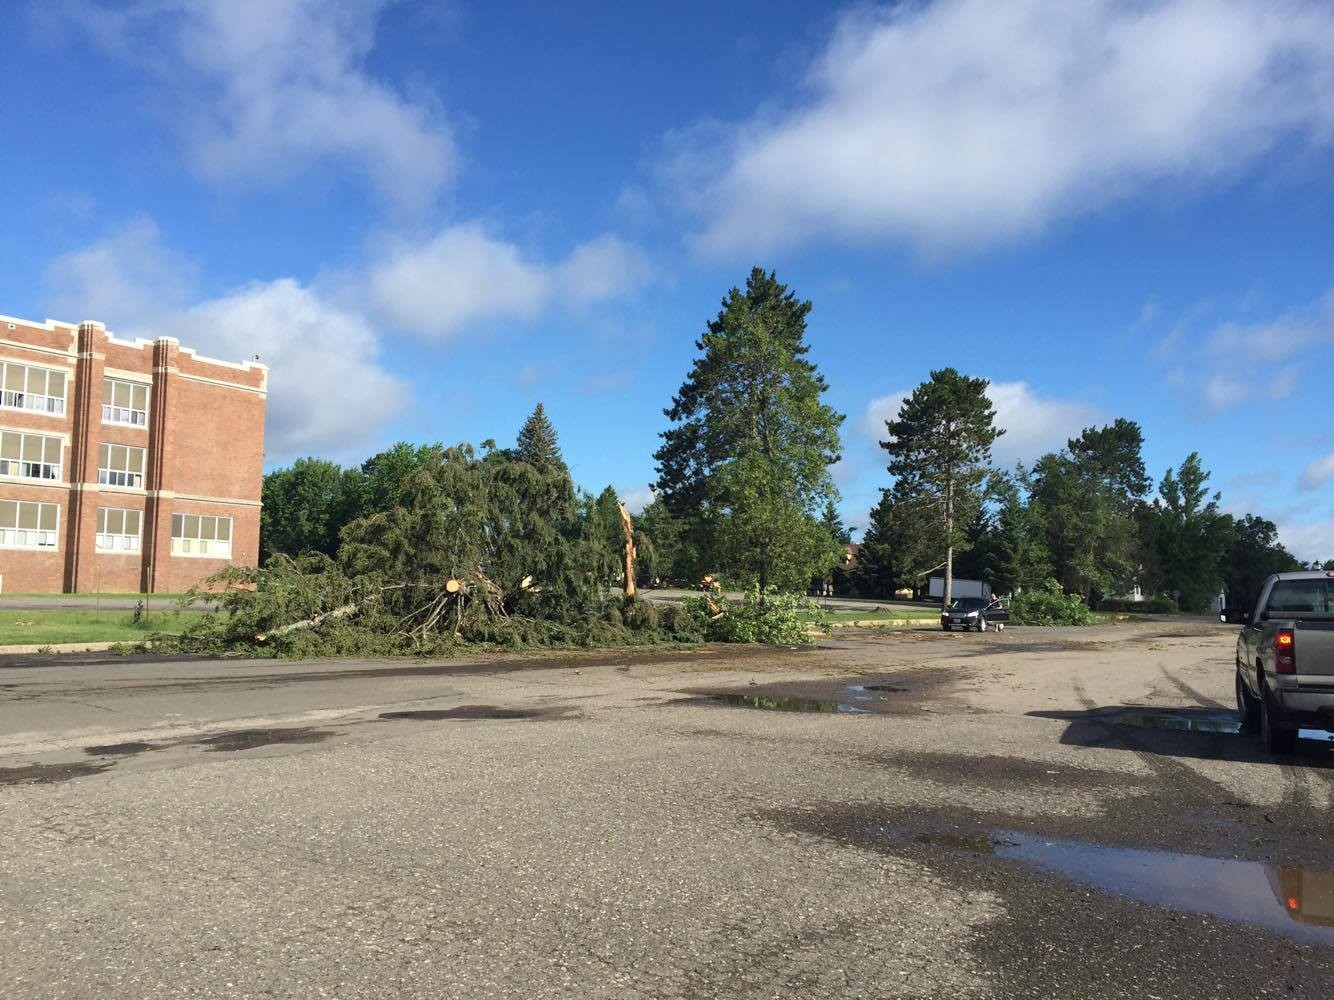 Trees down by the Ely school